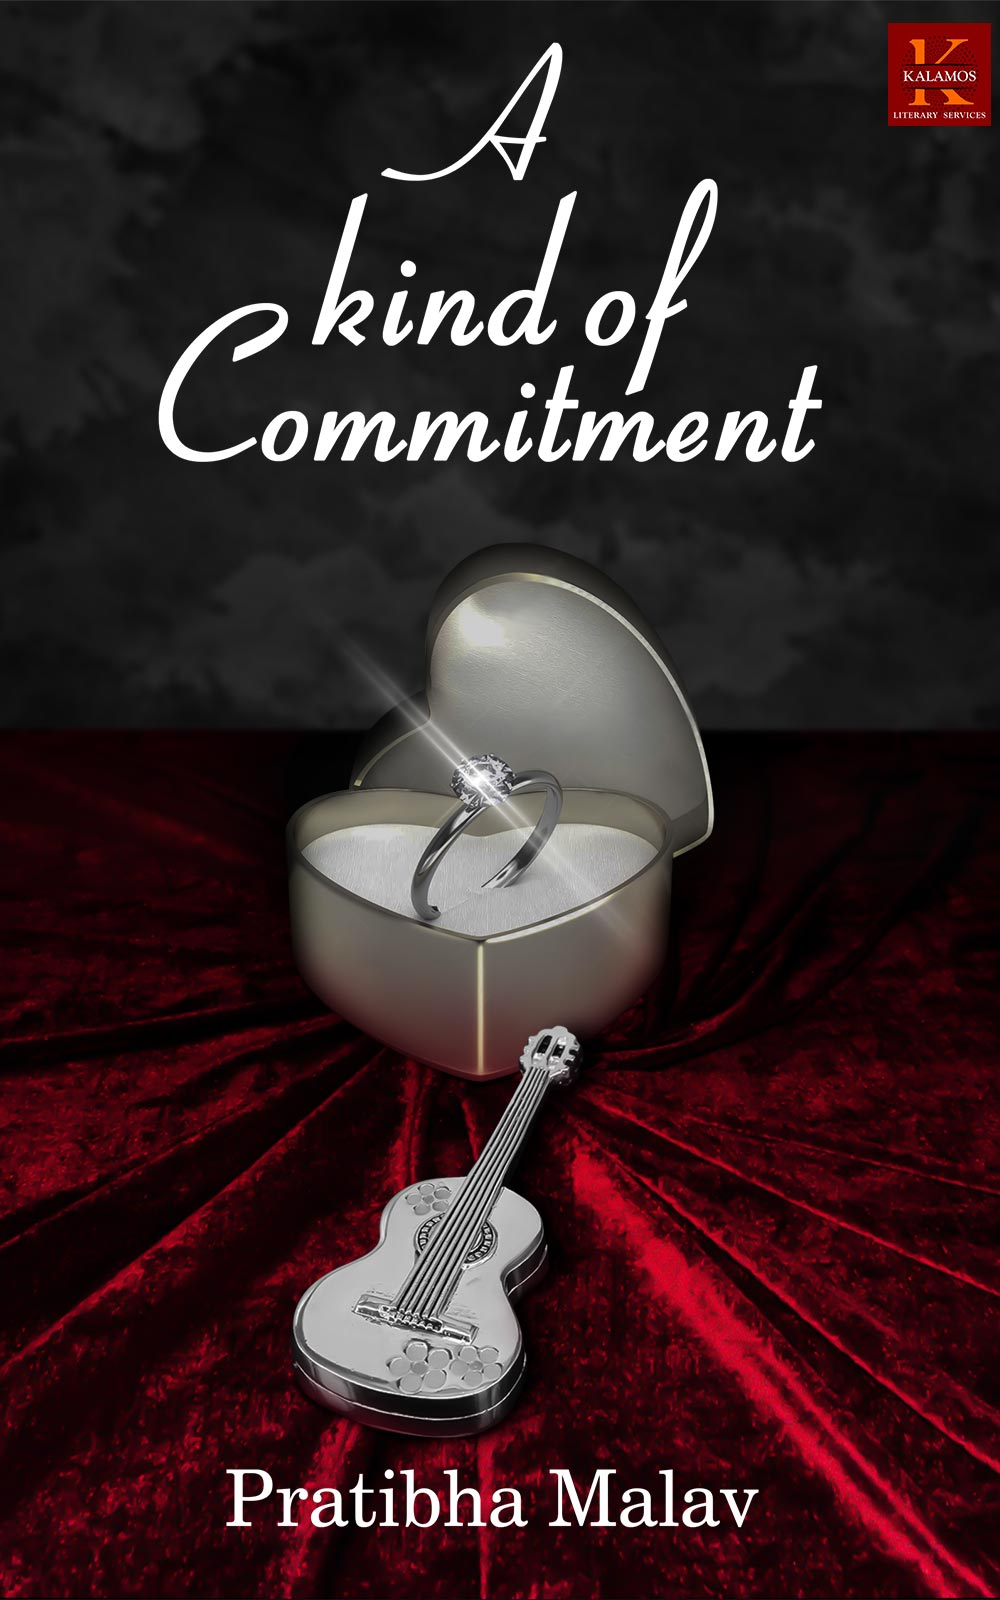 A Kind of Commitment By Pratibha Malav